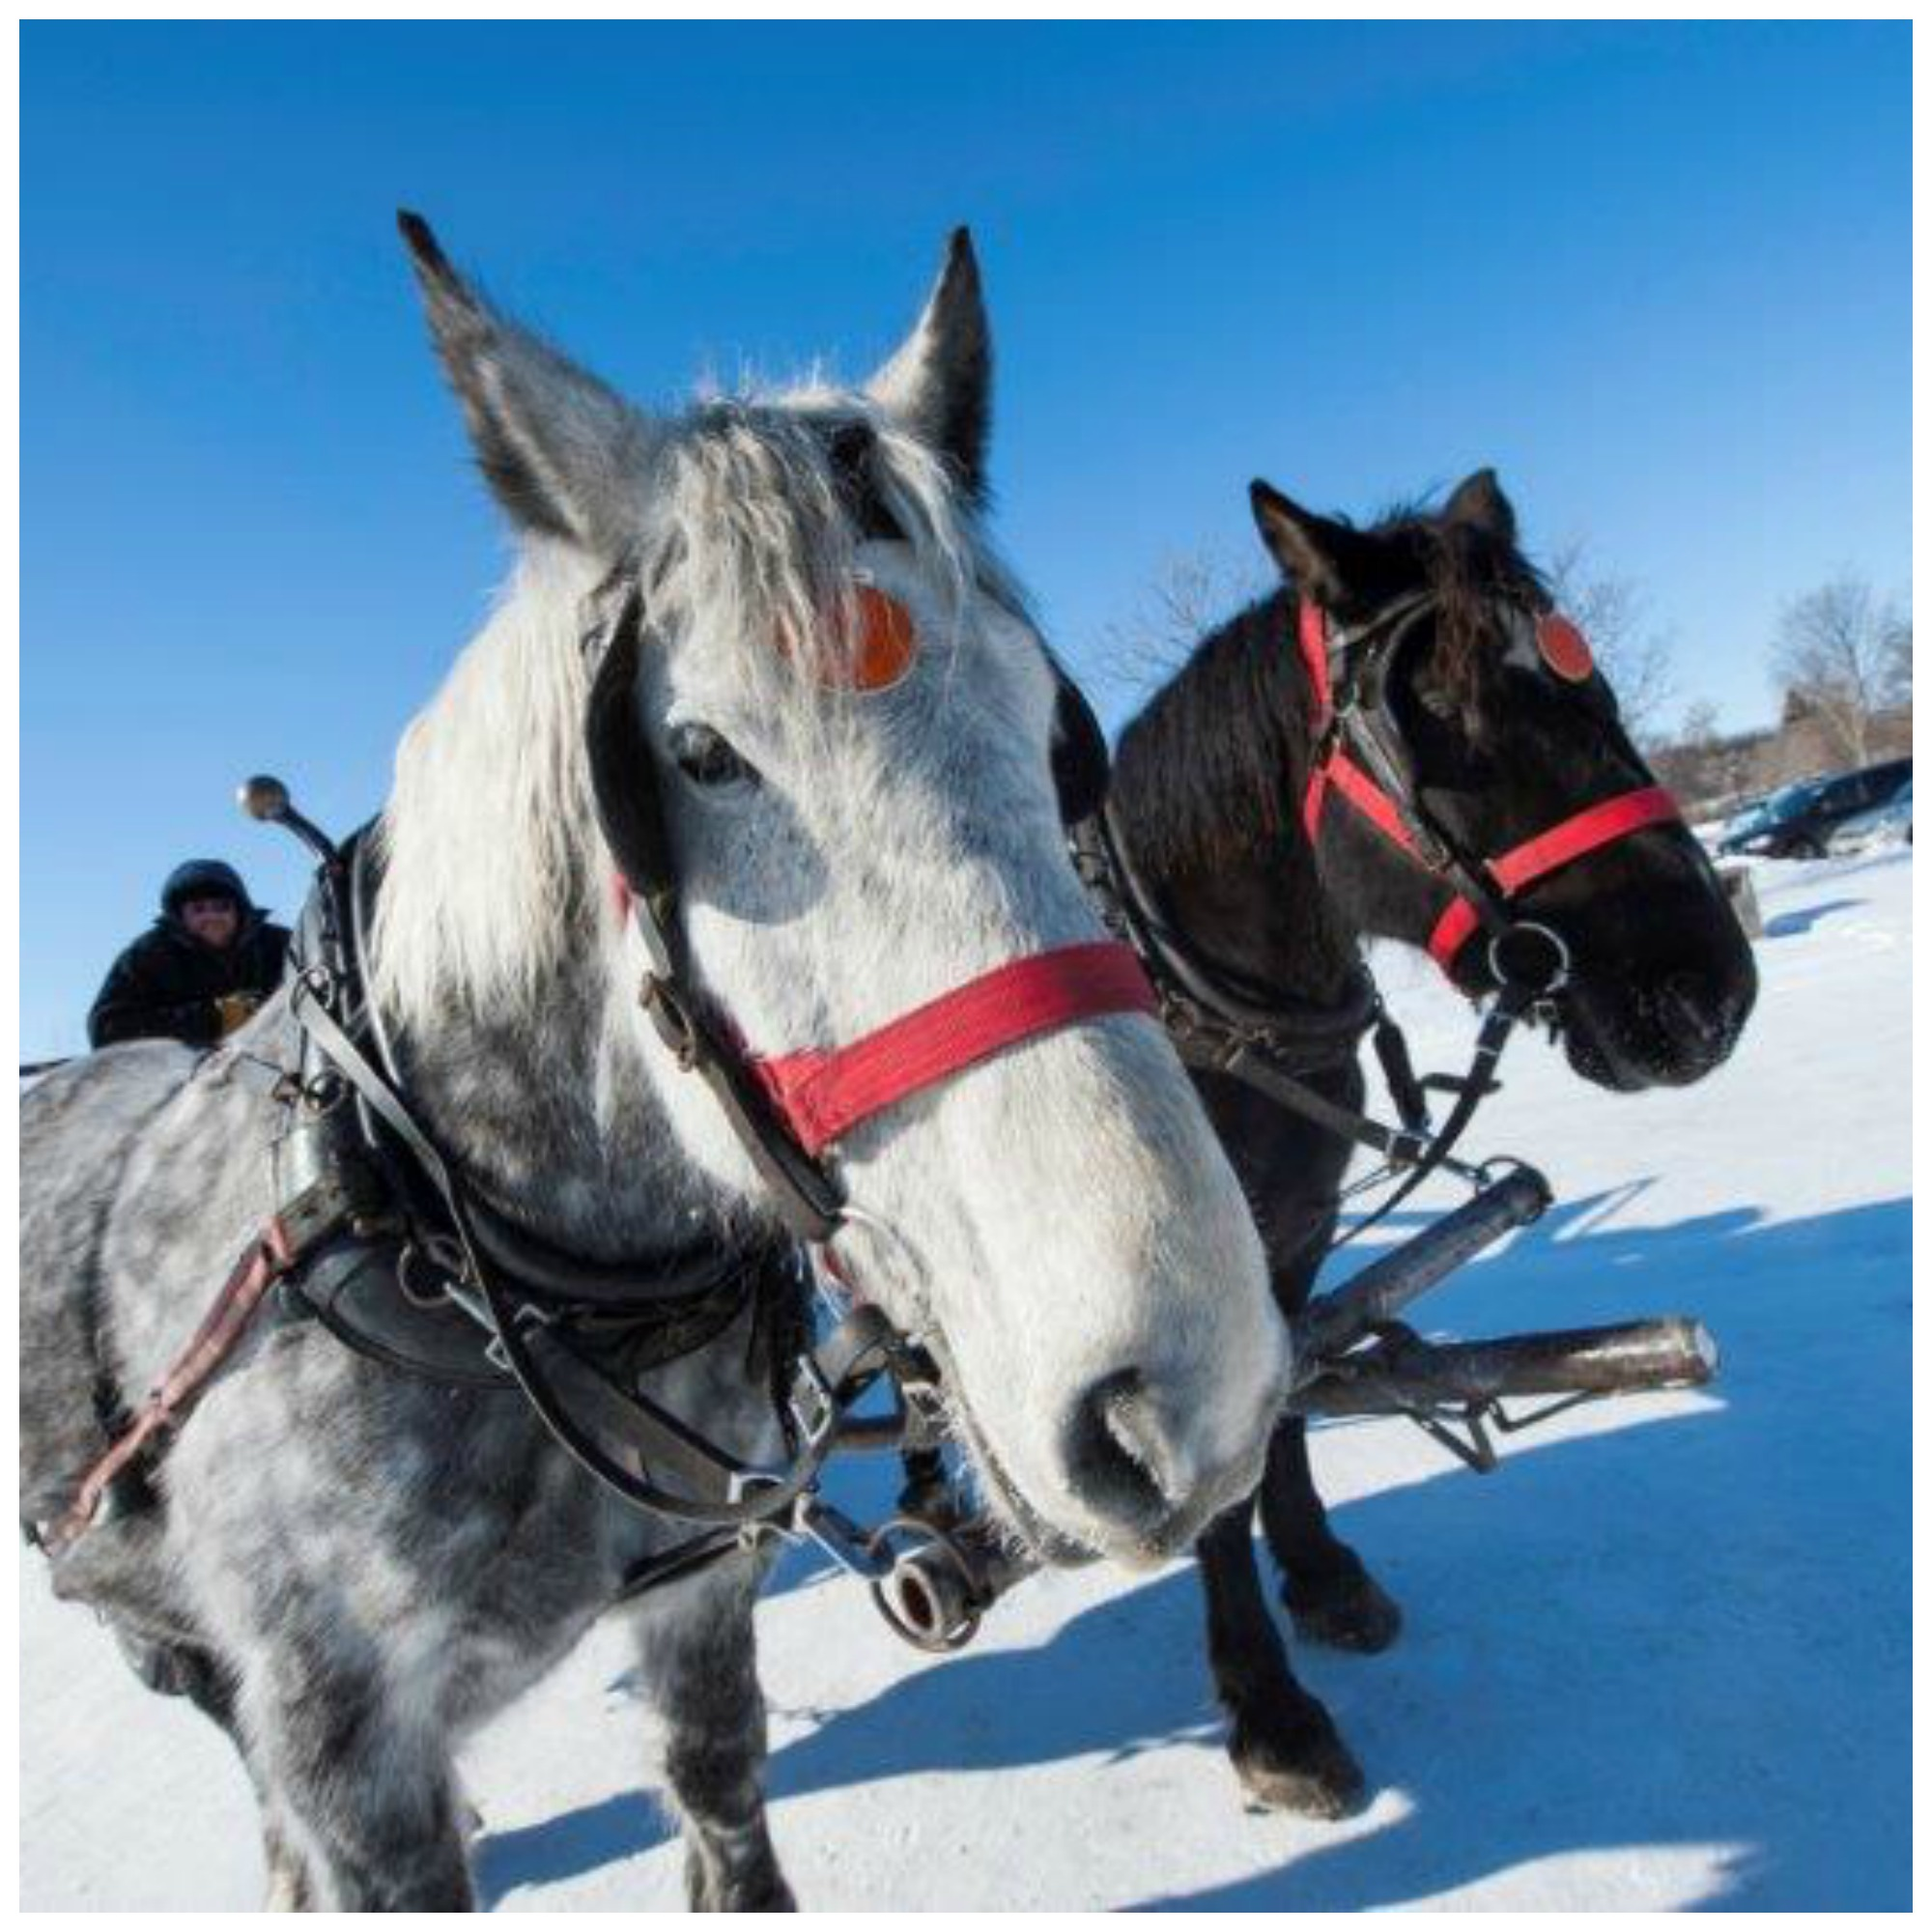 Winter Wagon Rides, December 31st from 3 - 7 pm.